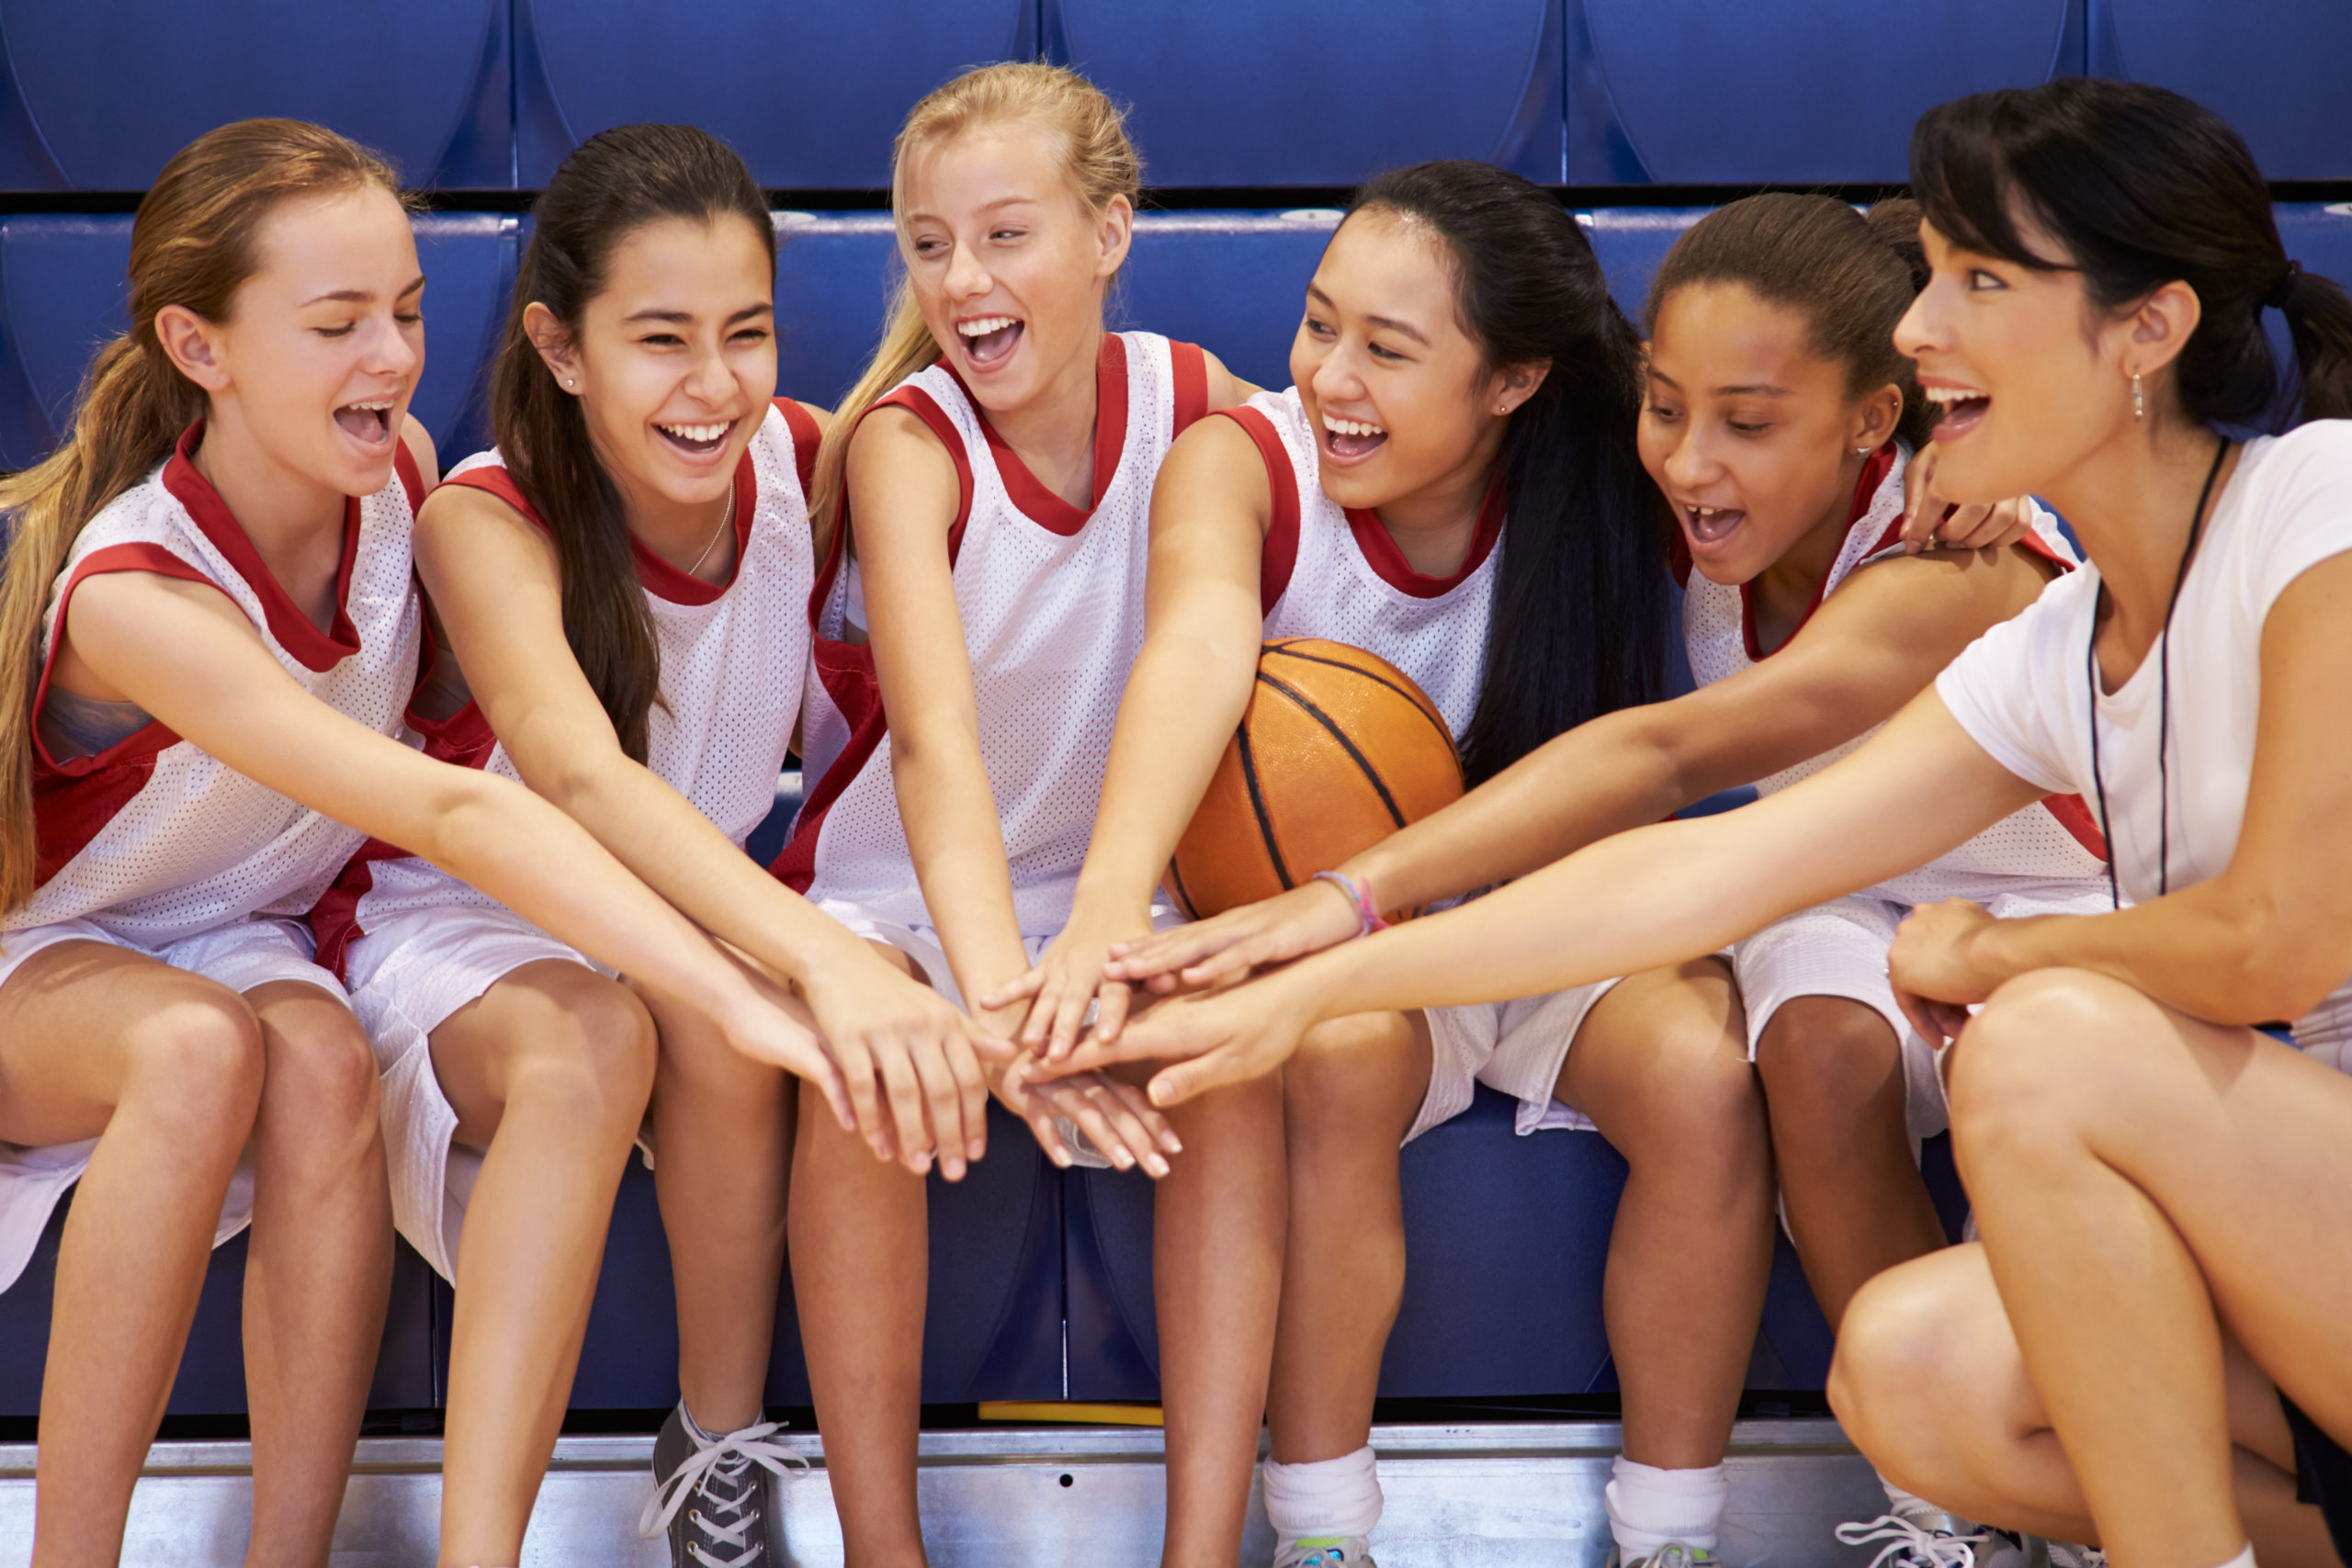 Happy teenage girl basketball players seated in gym reaching hands into a circle with a female coach.